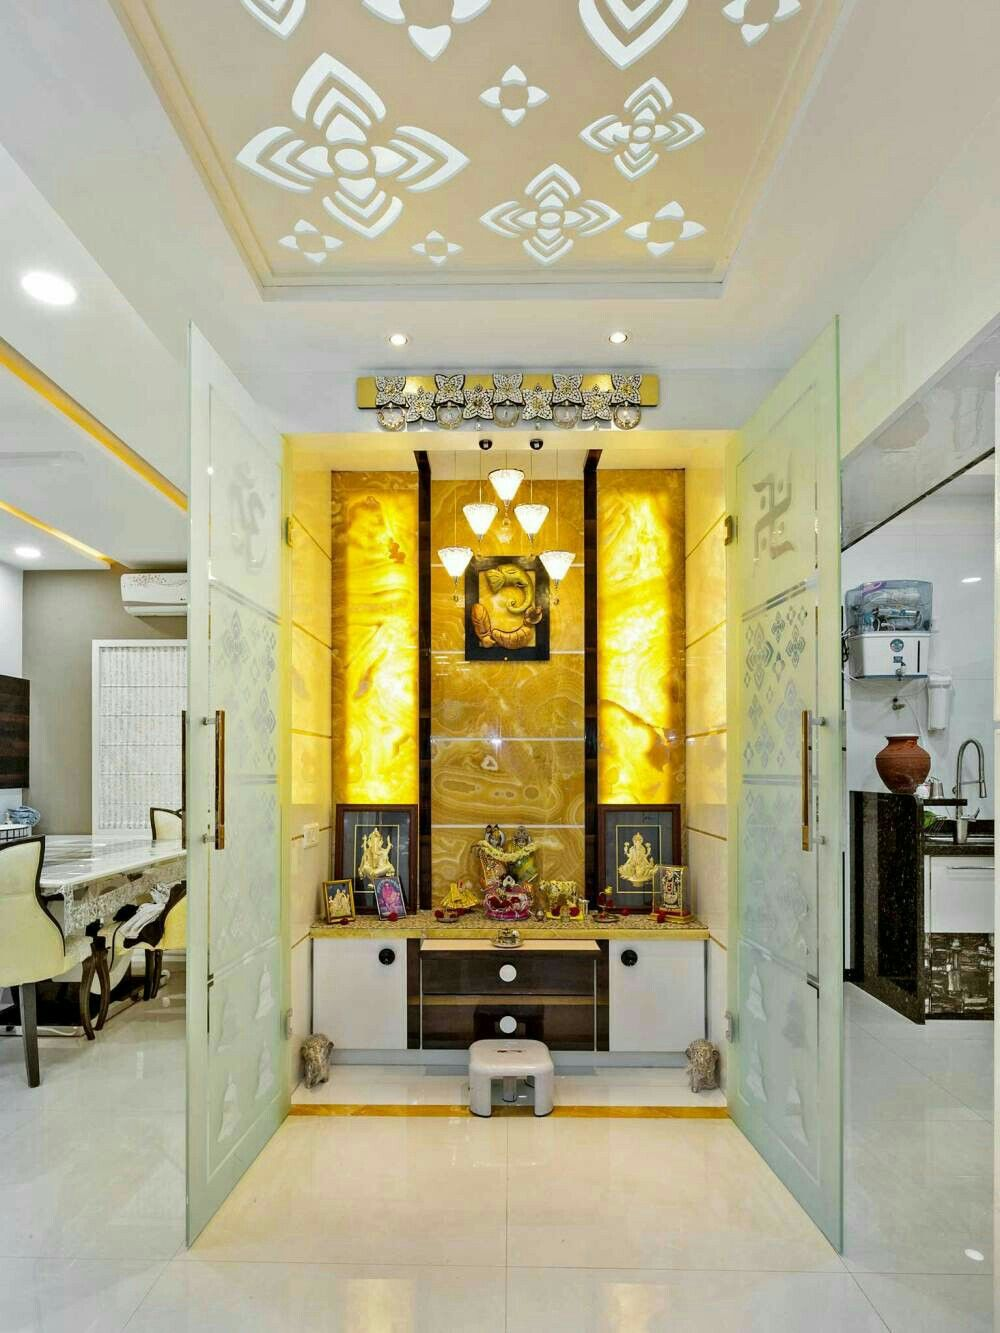 9 Traditional Pooja Room Door Designs In 2020: 0a02f5bcaa4f035b7c5b9eb01e15313f.jpg (1000×1333)